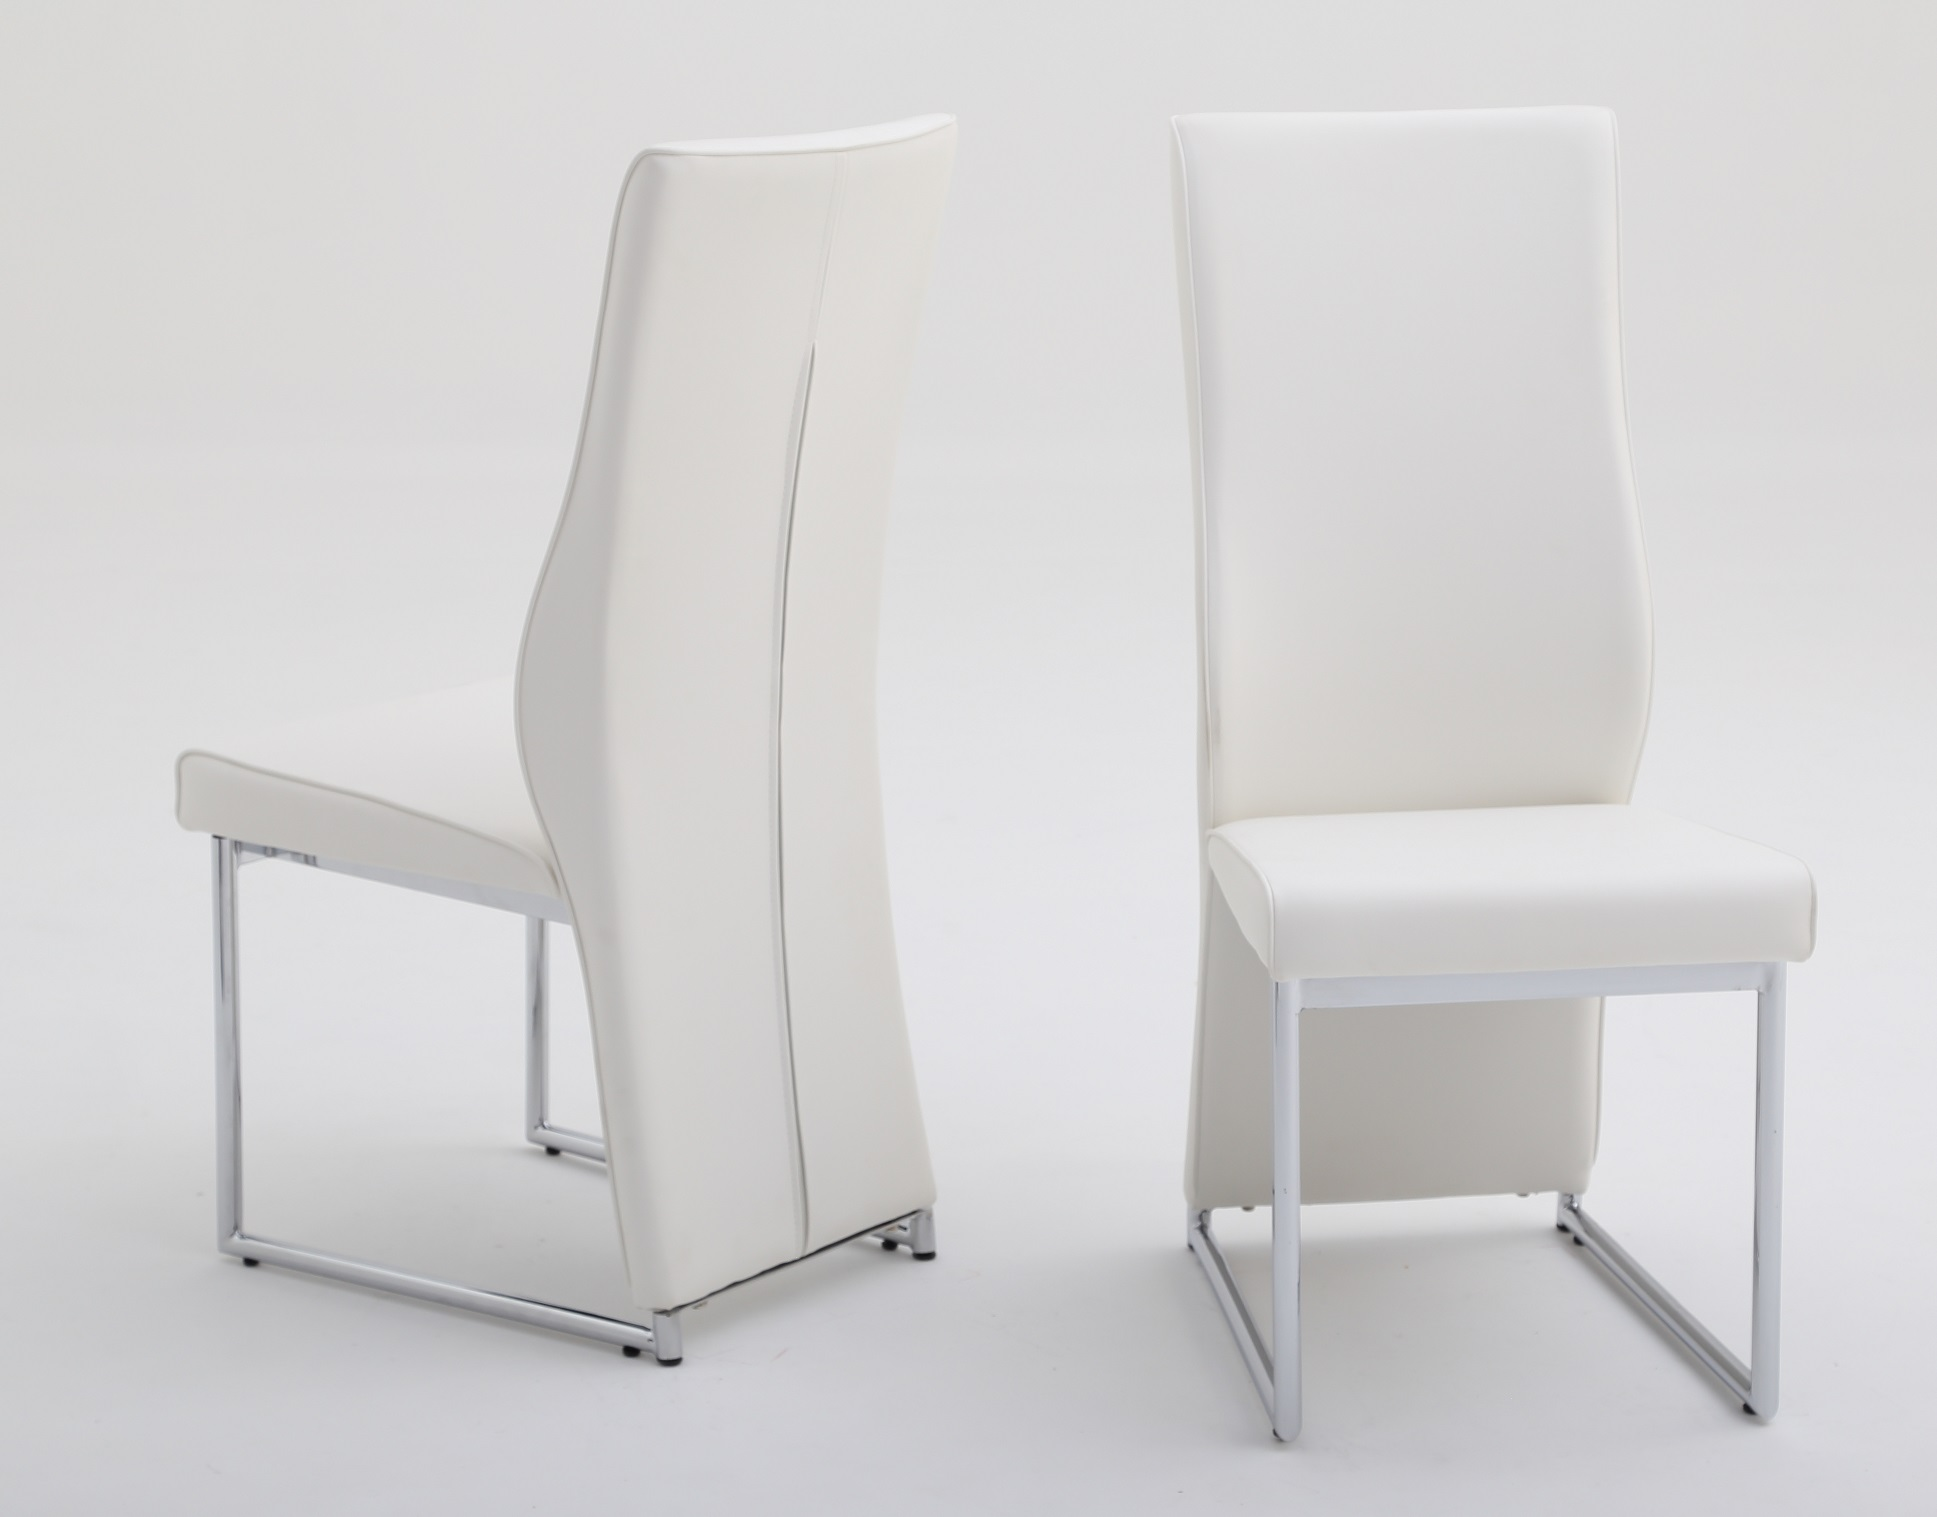 https://www.firstfurniture.co.uk/pub/media/catalog/product/r/e/remo_chair_white_1.jpg